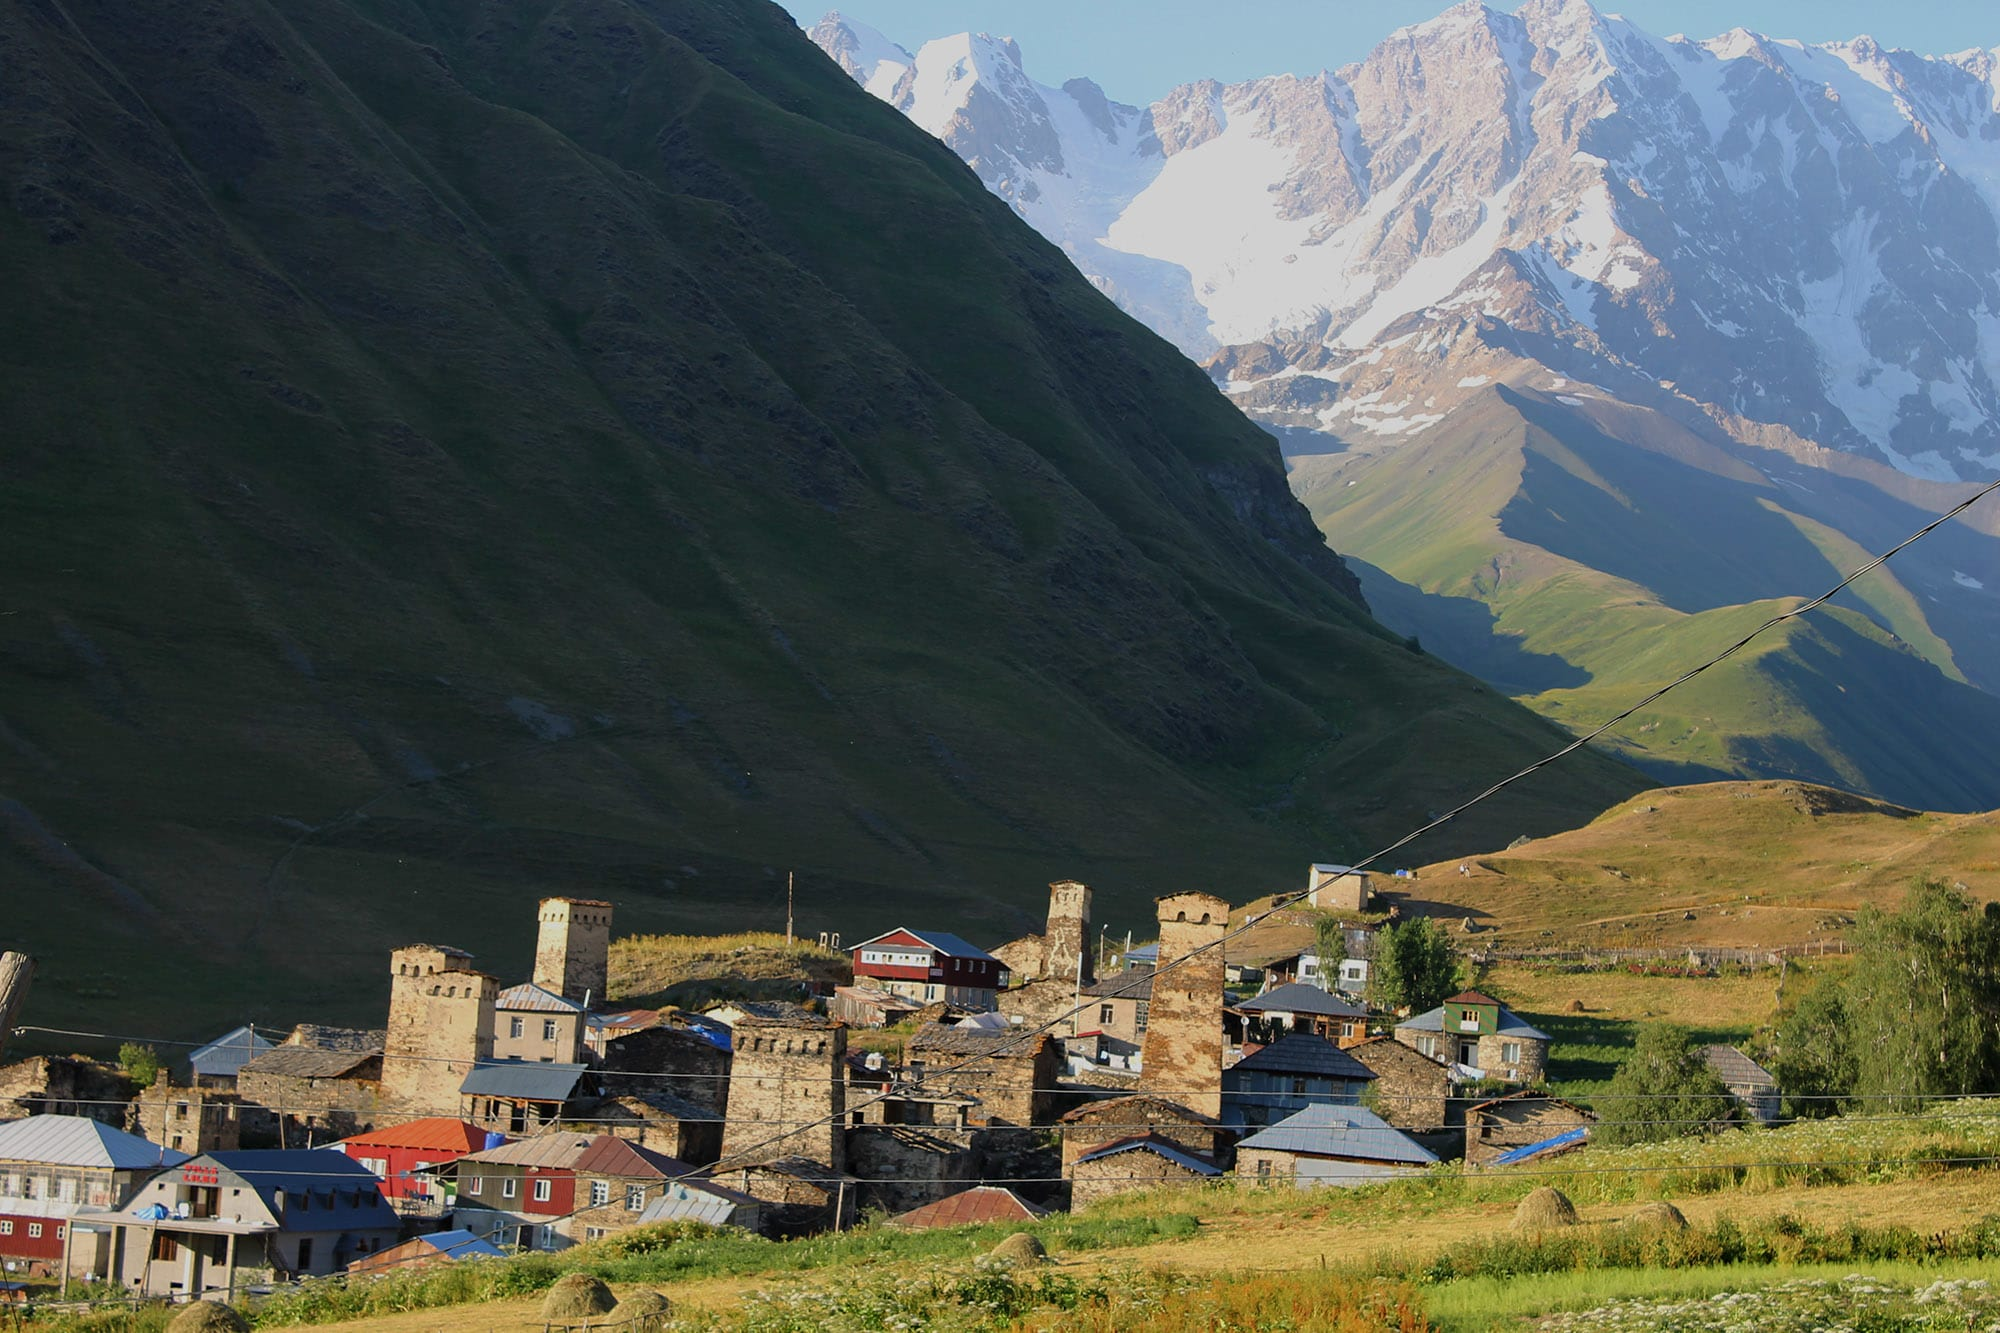 The village of Ushguli